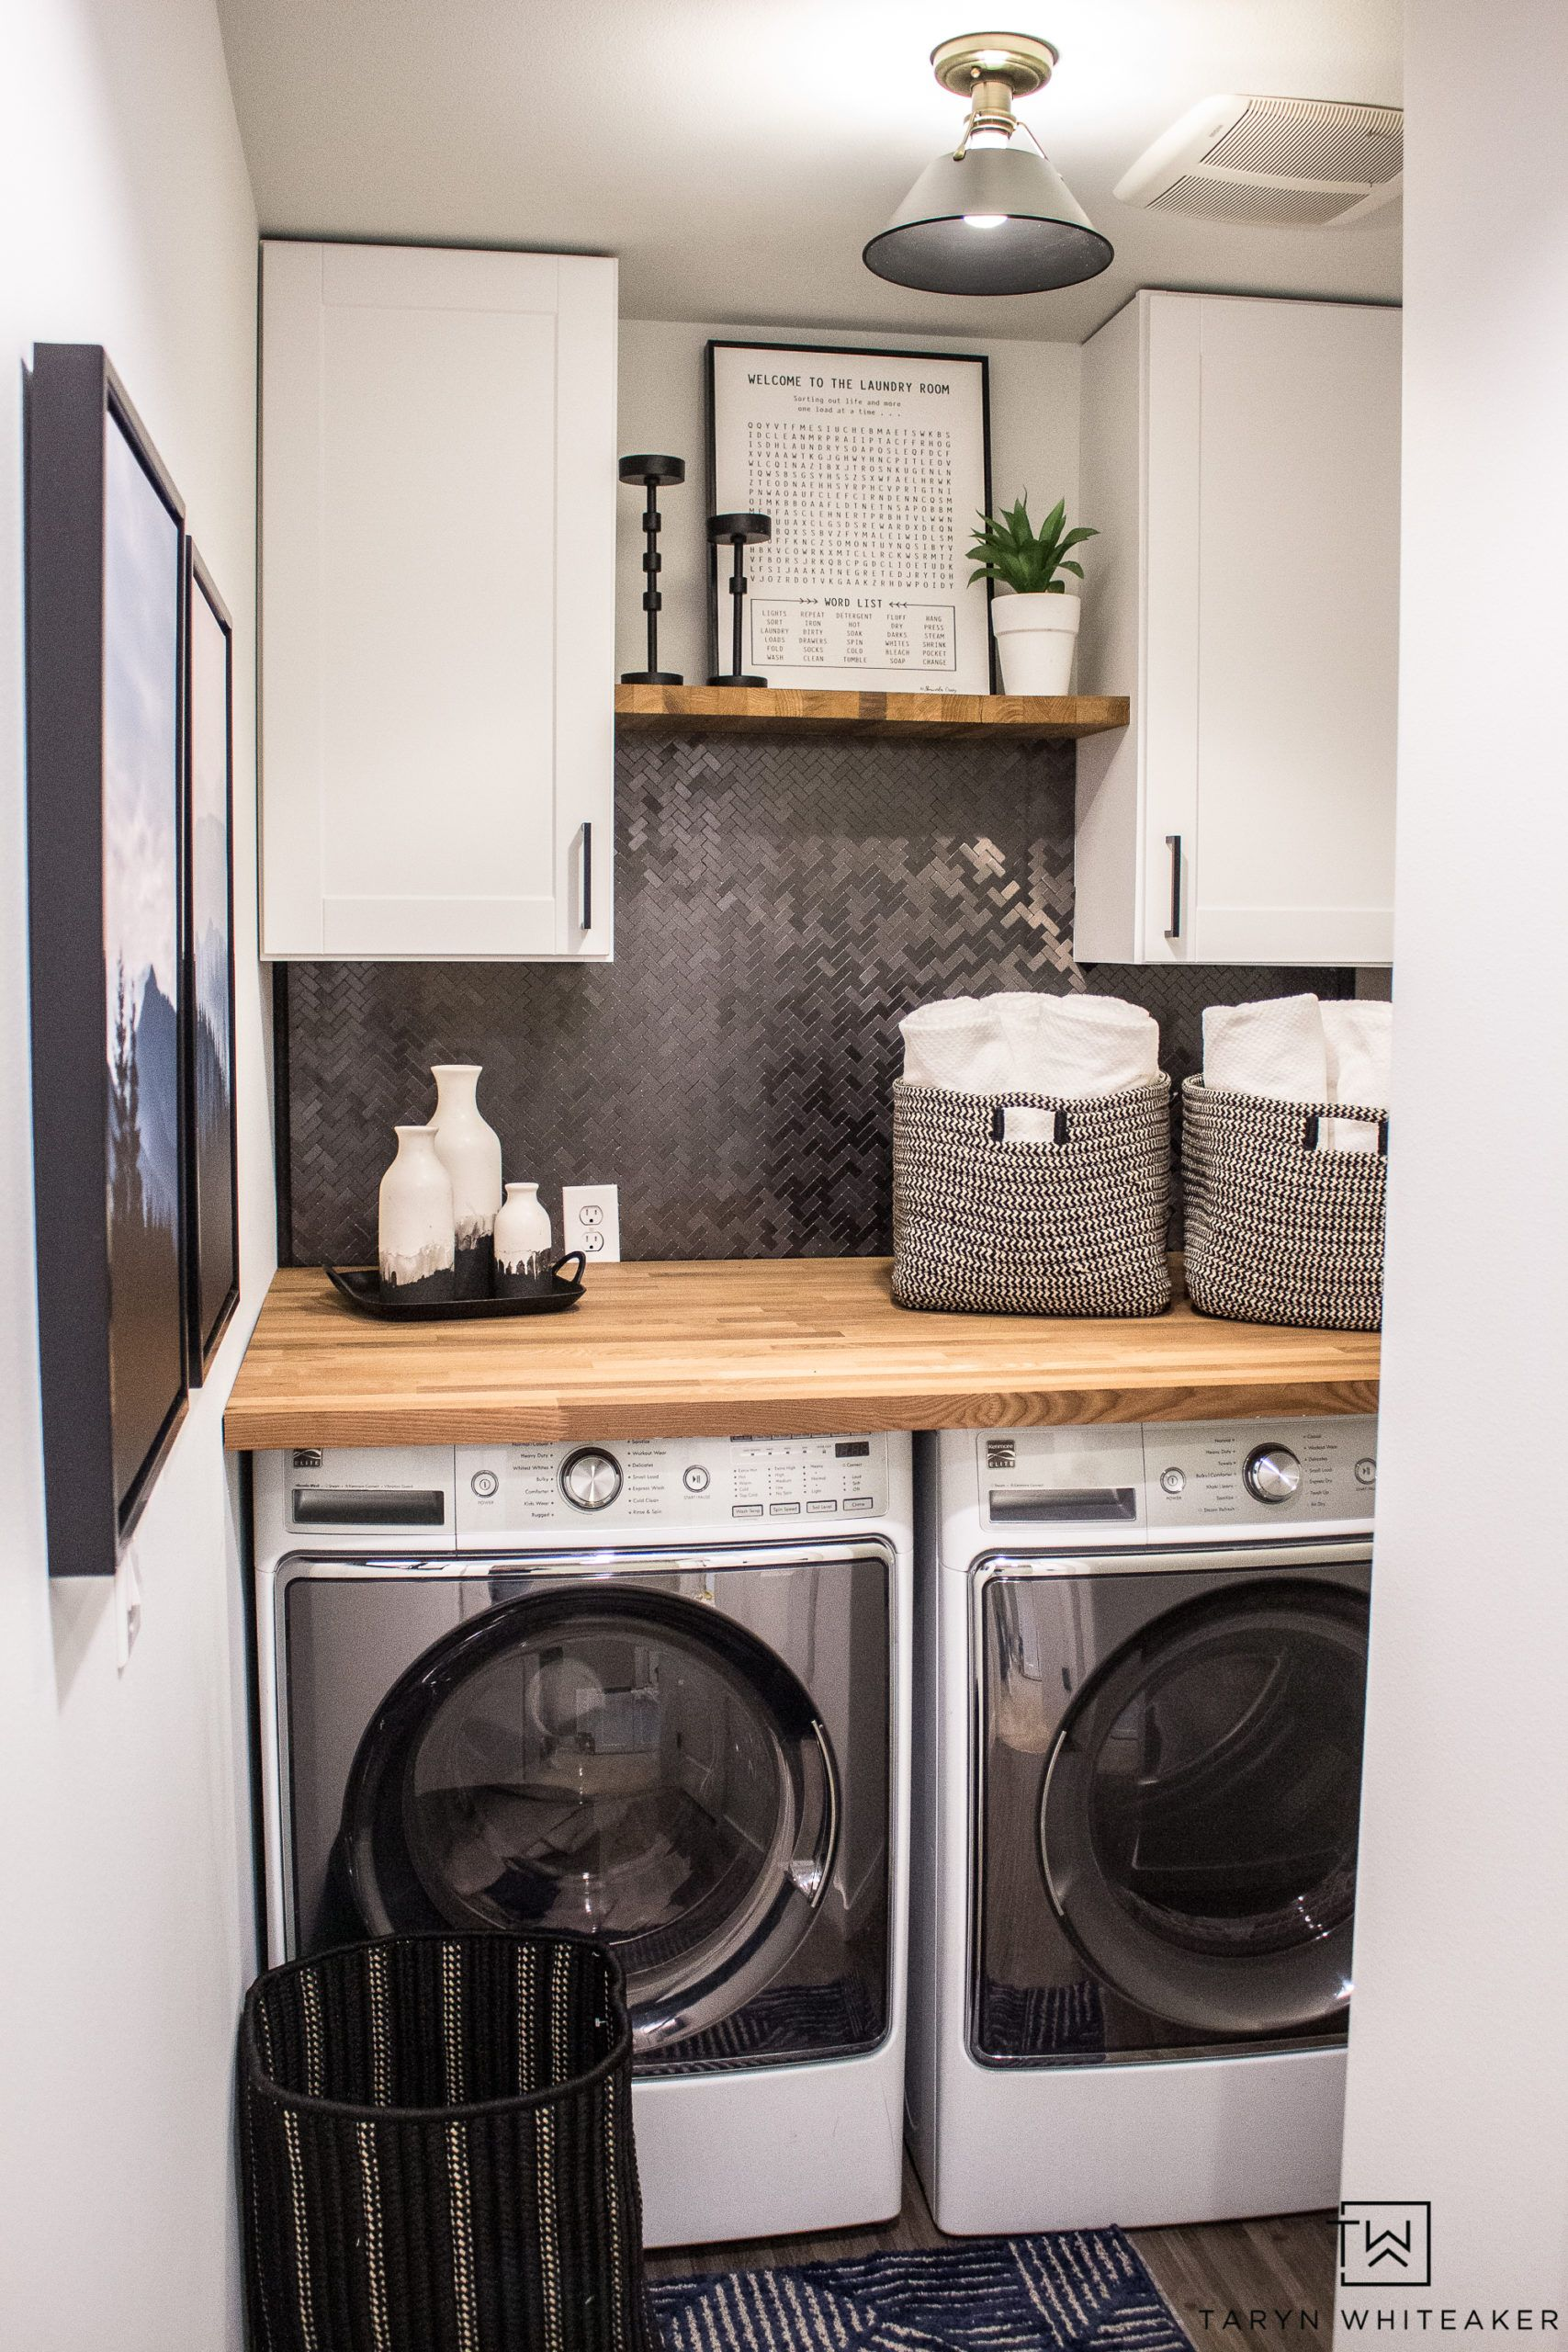 Small Laundry Room Makeover - Taryn Whiteaker in 11  Small